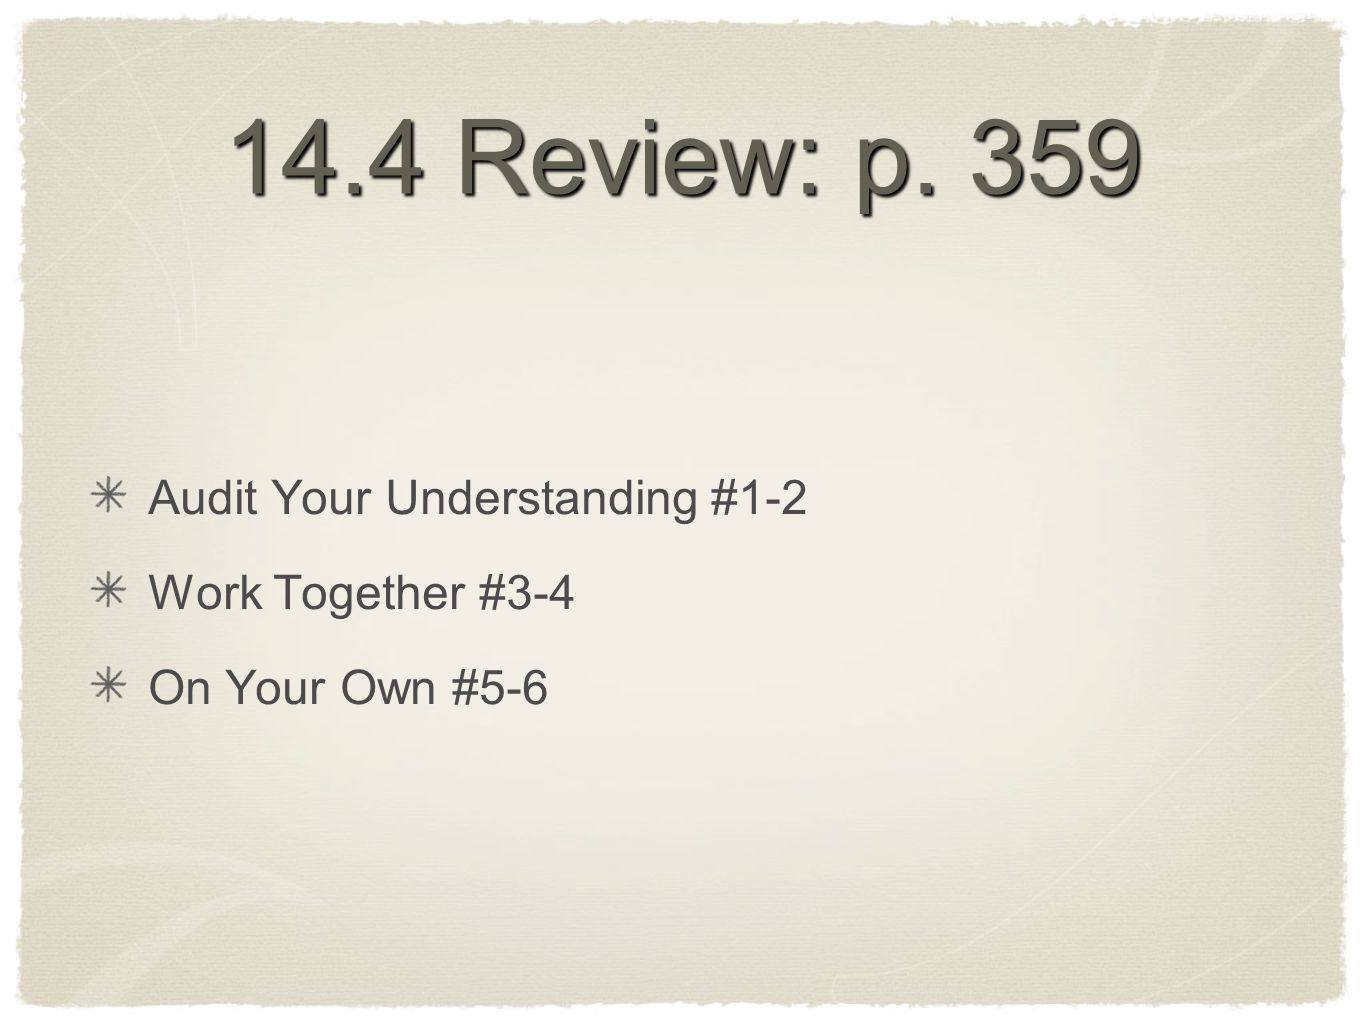 14.4 Review: p. 359 Audit Your Understanding #1-2 Work Together #3-4